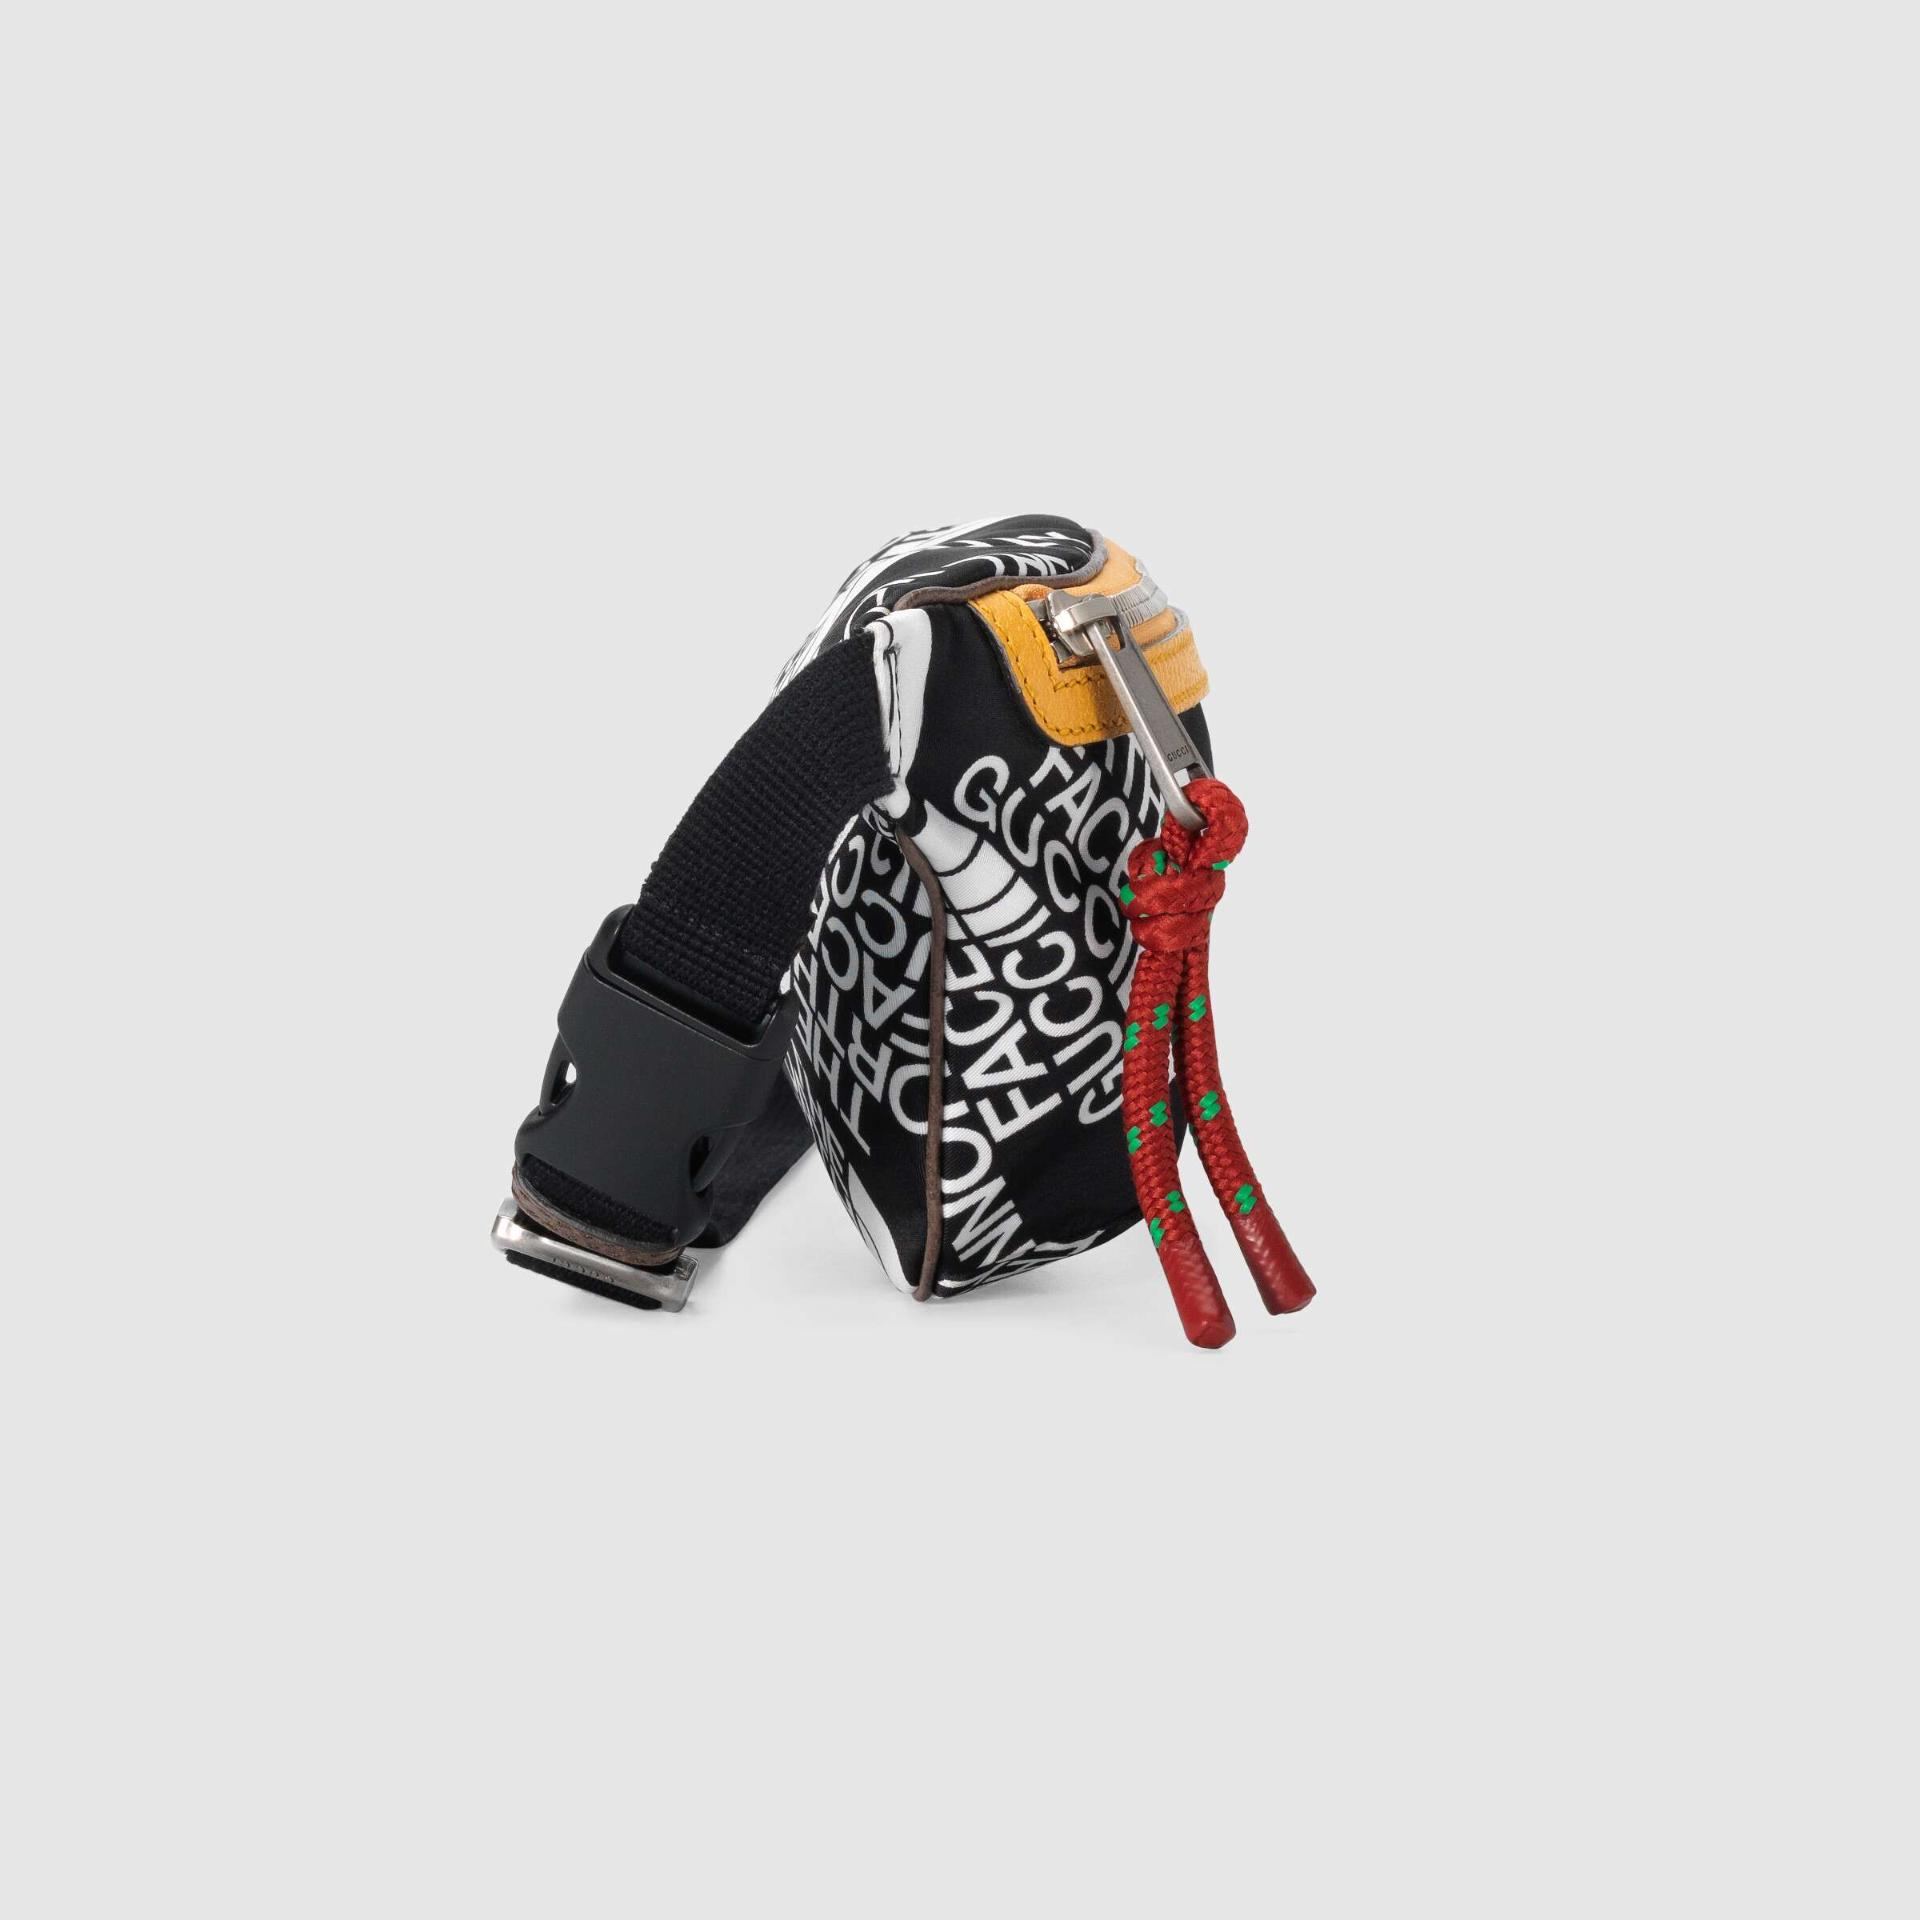 유럽직배송 구찌 GUCCI Gucci - The North Face x Gucci belt bag 6502992QNFN8427